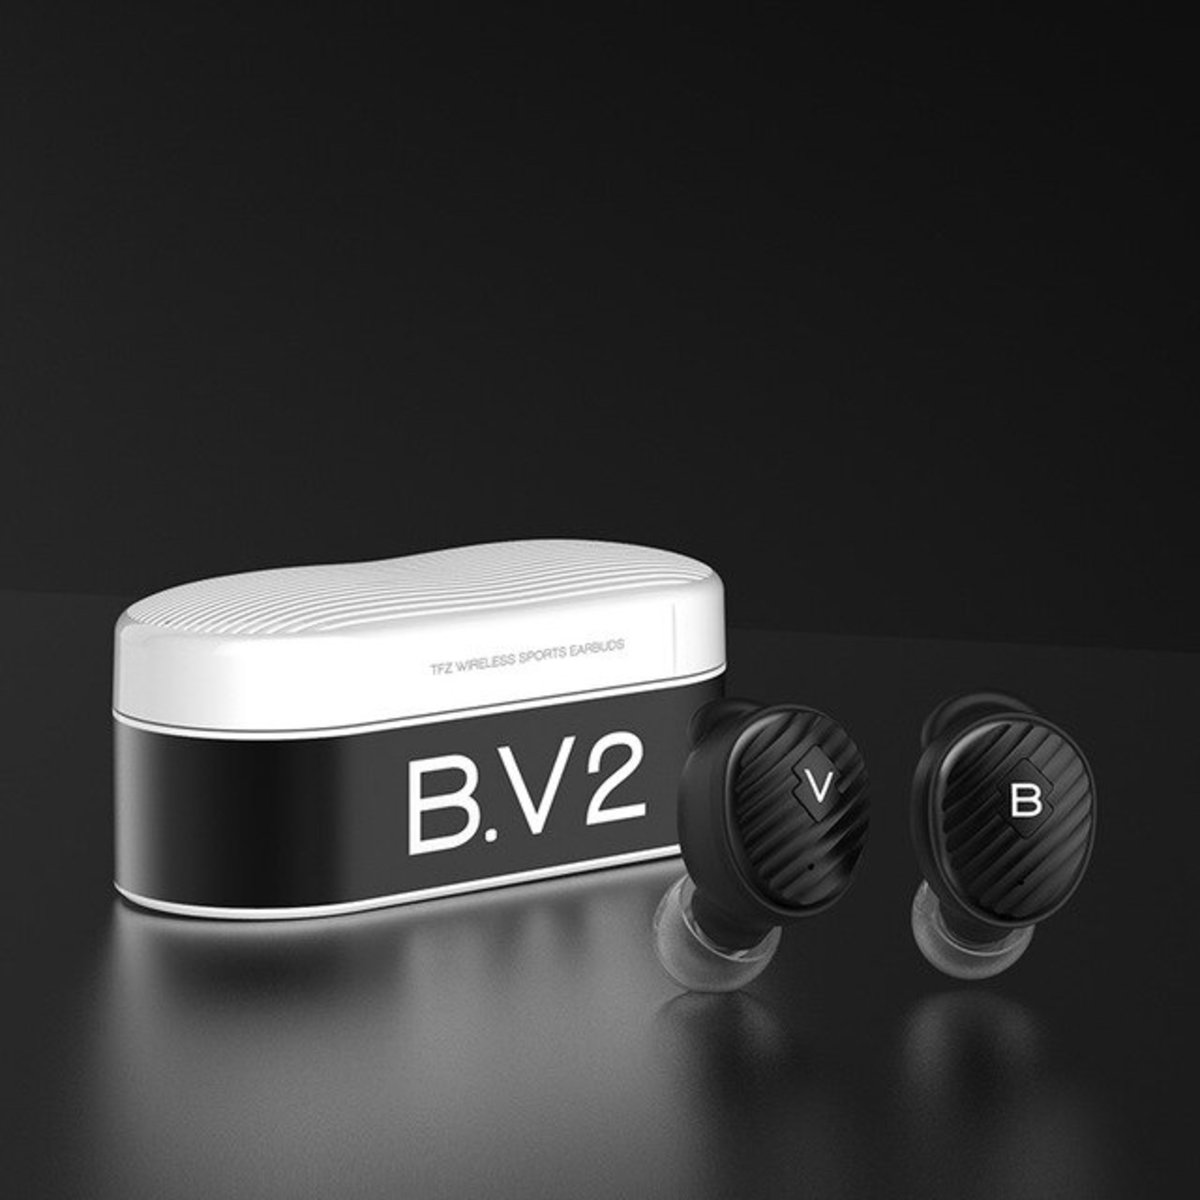 B.V2 Dynamic Driver HIFI True Wireless Earphons[Black]